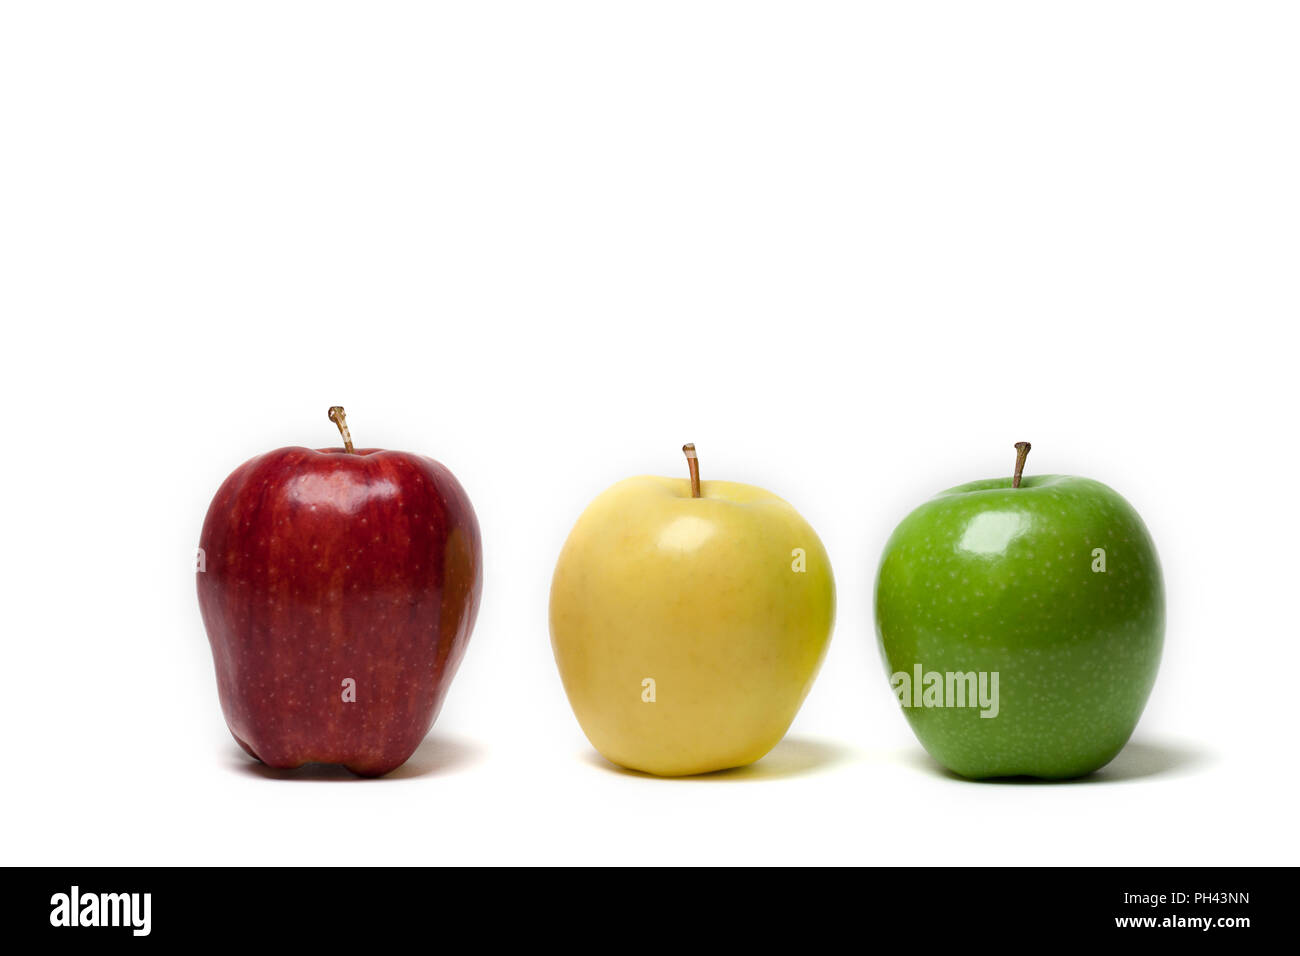 Three apples on a white background colors like a stoplight - Stock Image